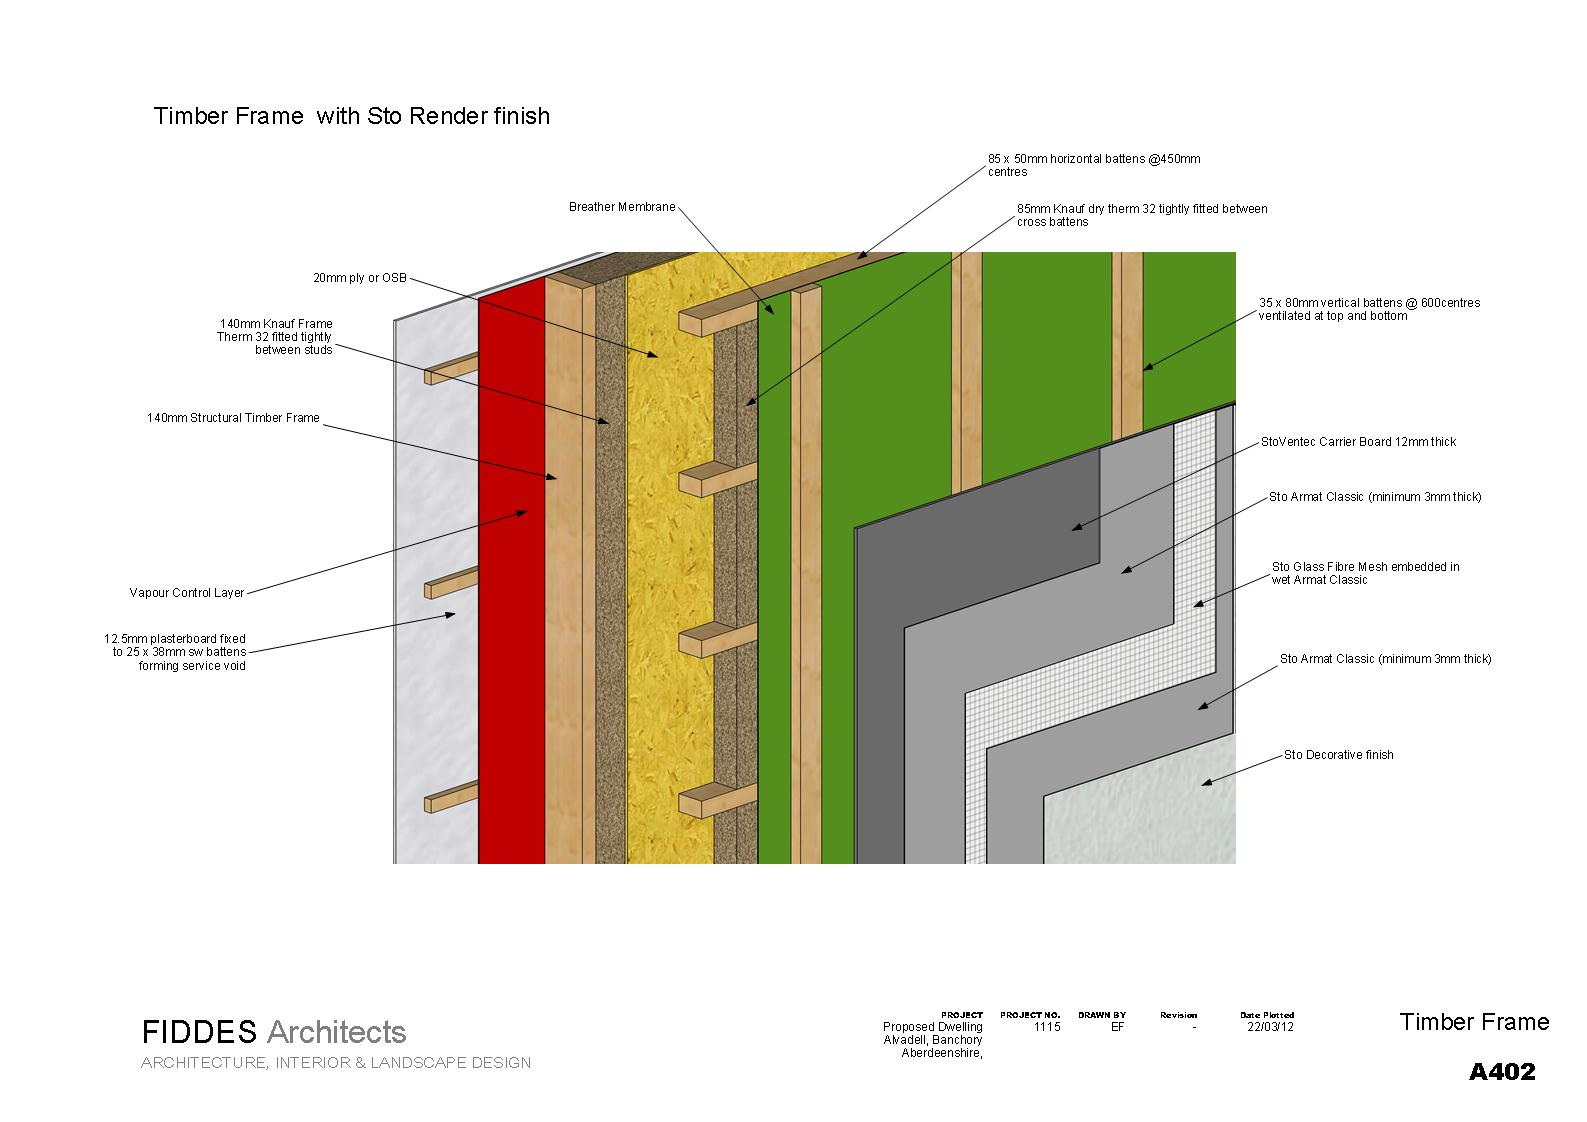 FidArch: New Wall Details for timber frame construction